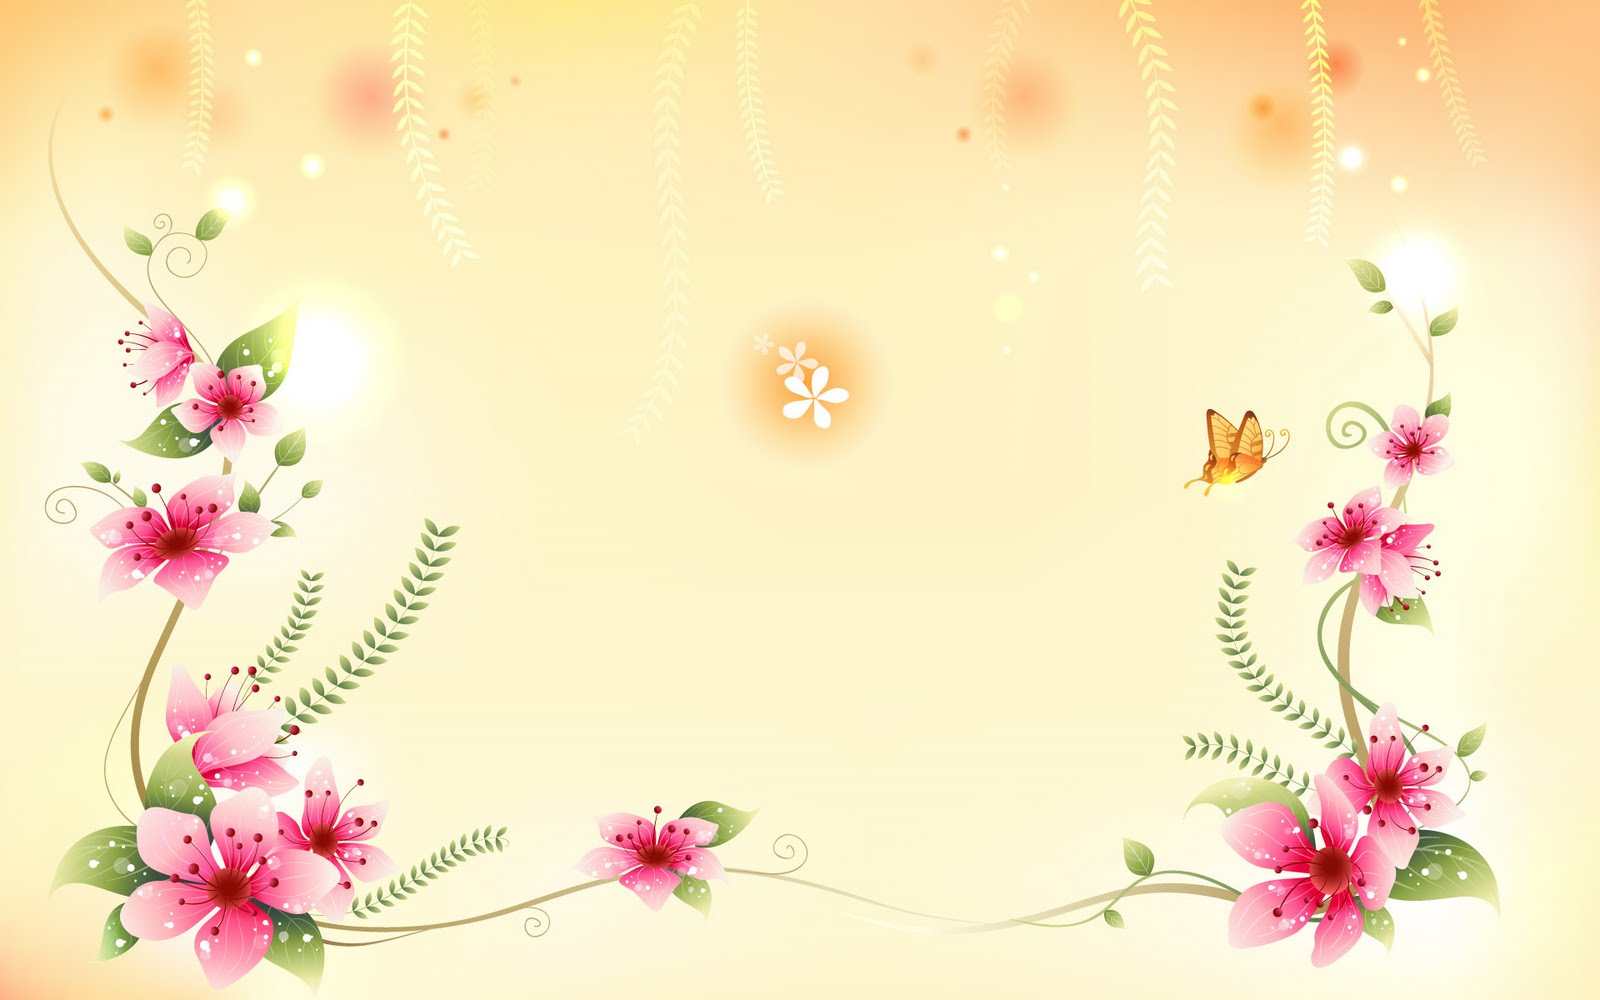 Moons Flower: Flower Background